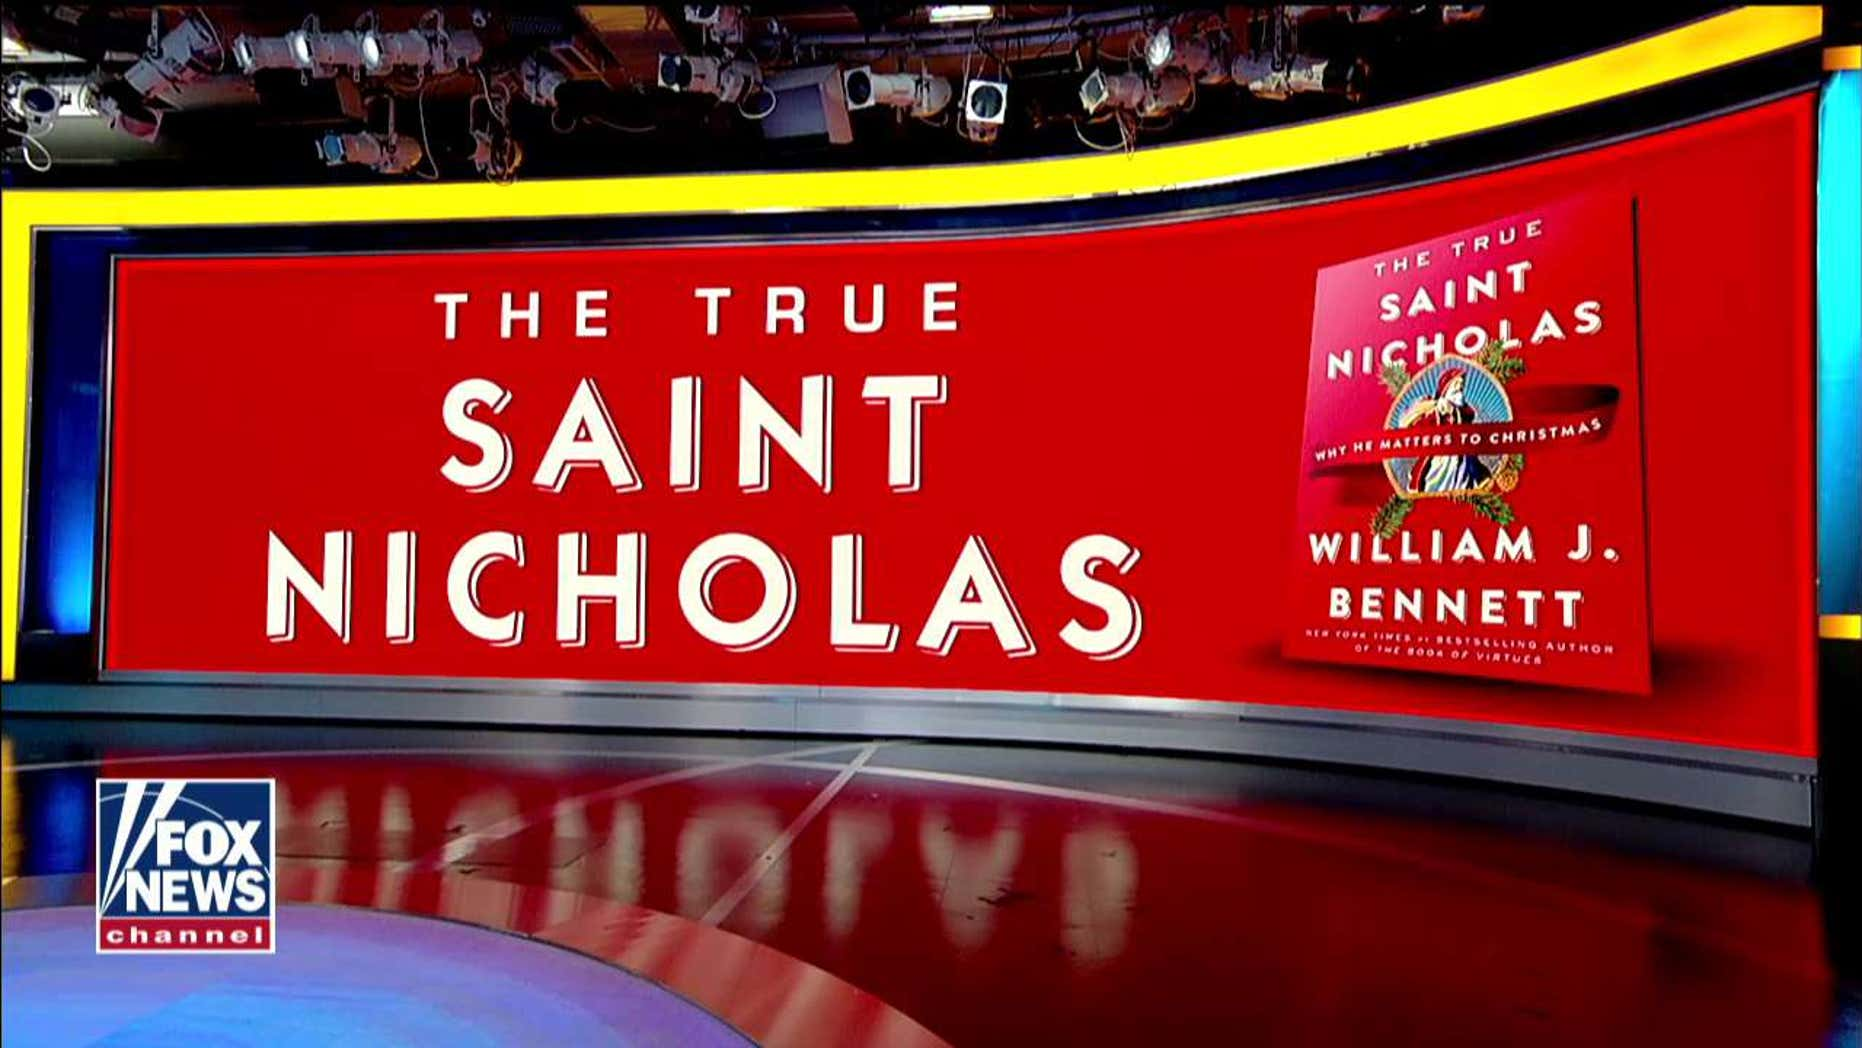 Fox News contributor Bill Bennett is the author of 'The True Saint Nicholas: Why He Matters to Christmas'